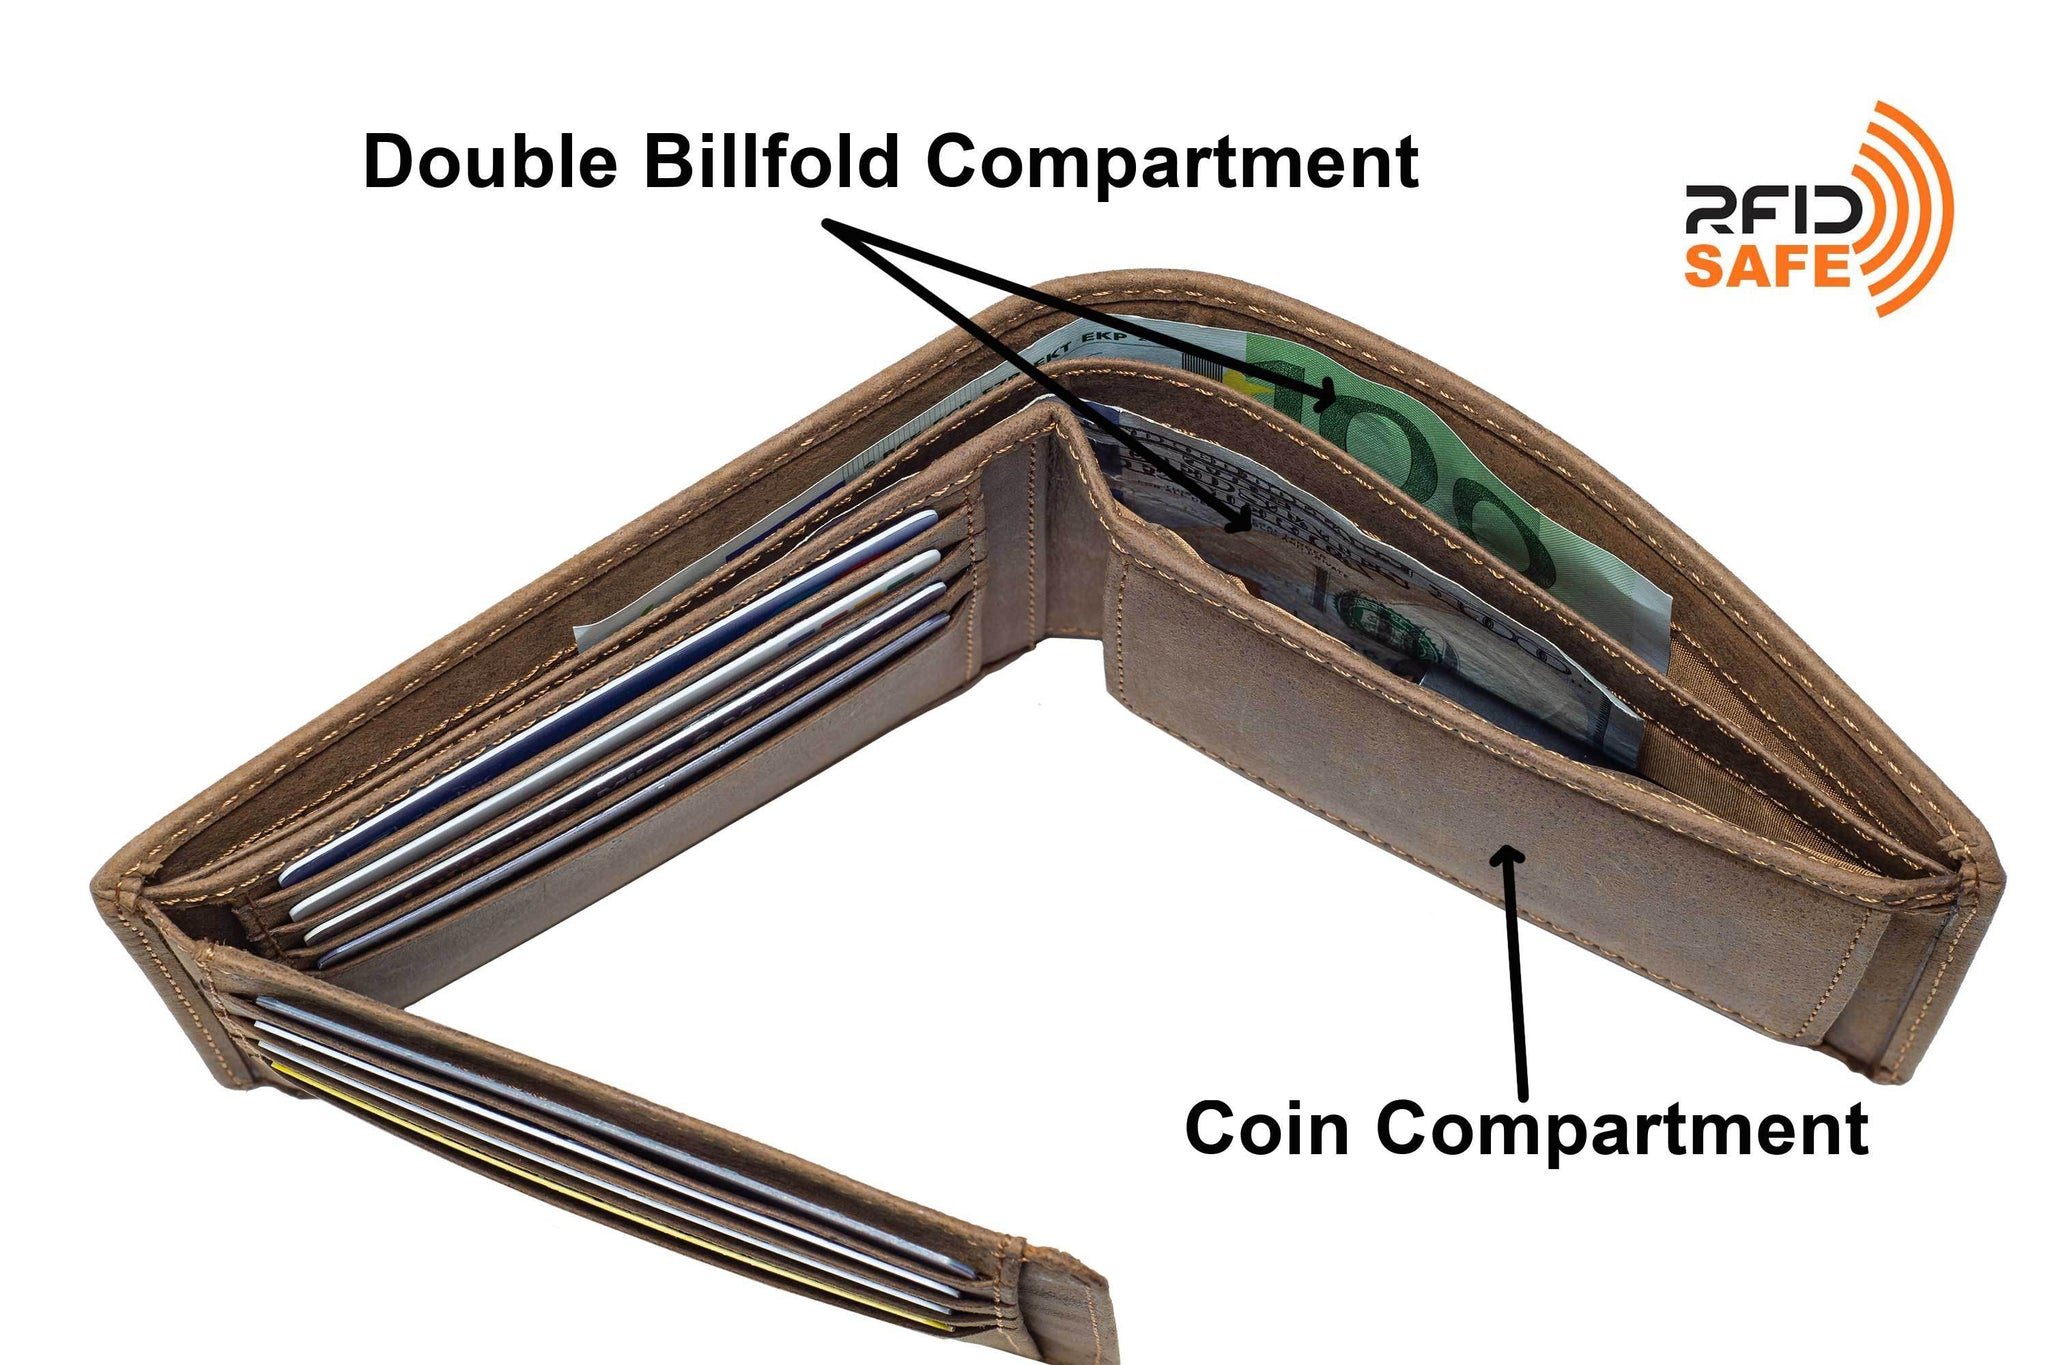 DiLoro Men's Leather Bifold Wallet with Flip ID, Coin Wallet and RFID Blocking Technology - fully open, top view showing double billfold and hidden slip pockets of the wallet